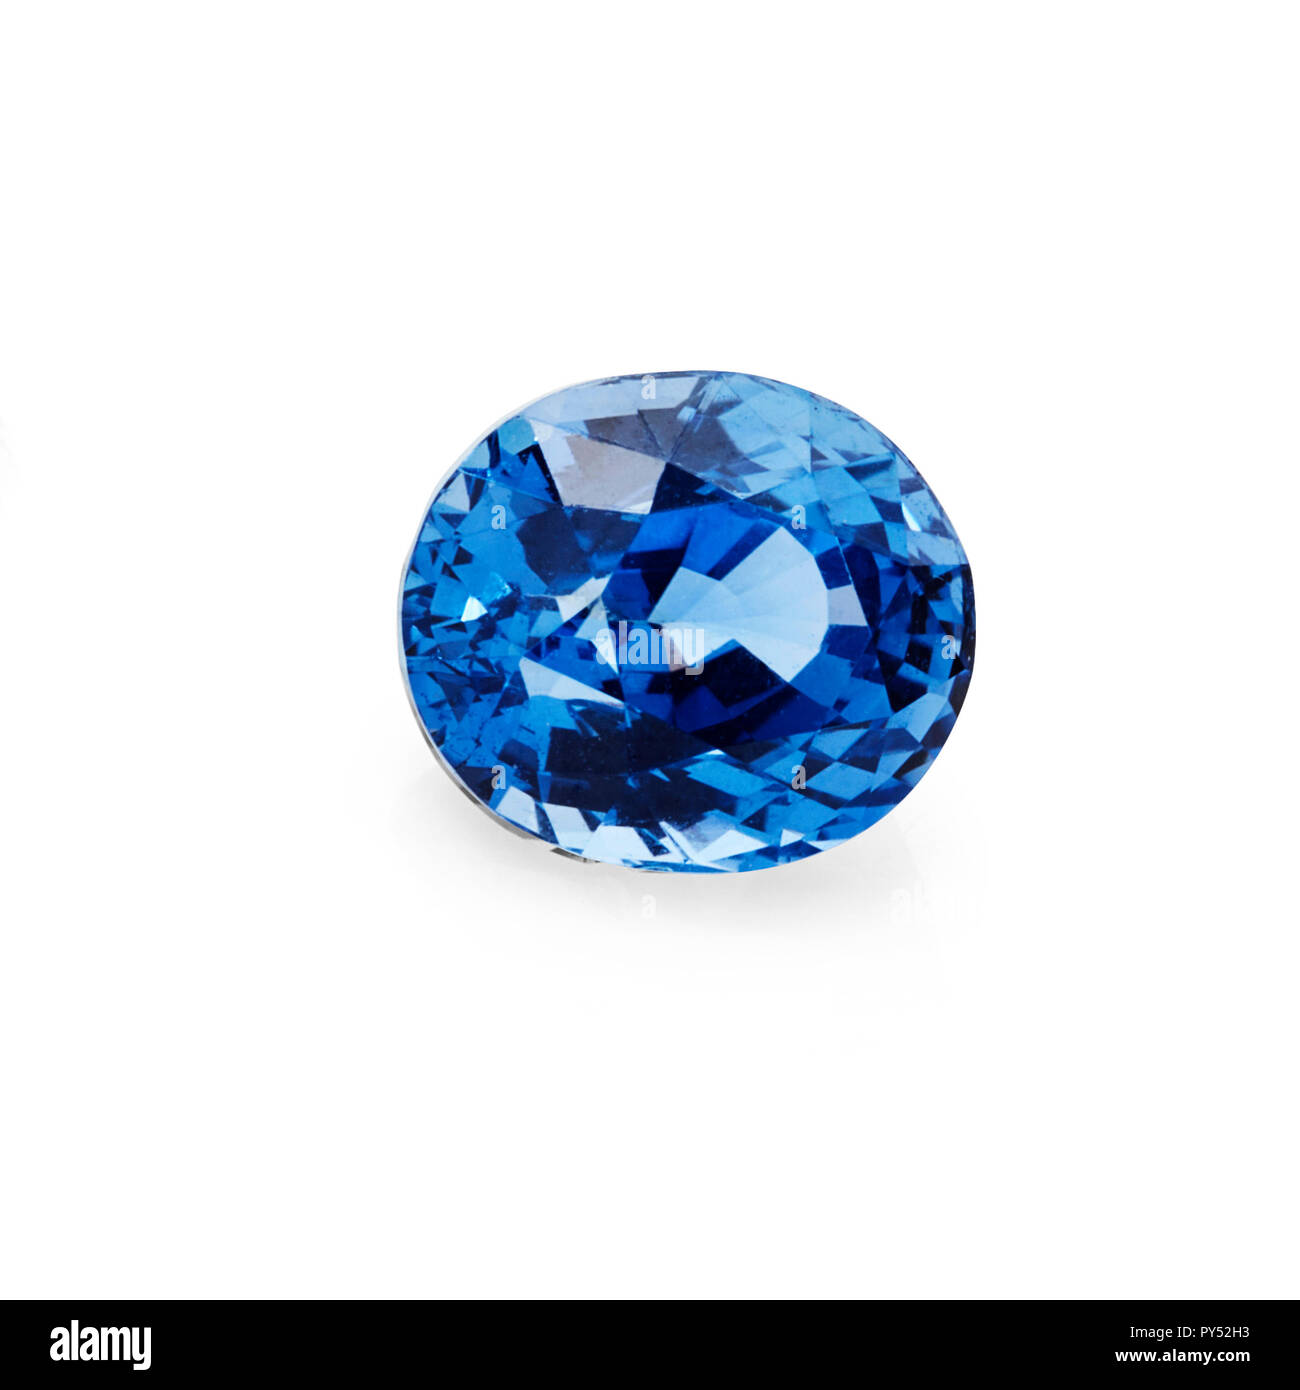 1.61ct blue sapphire gemstone on a white background - Stock Image